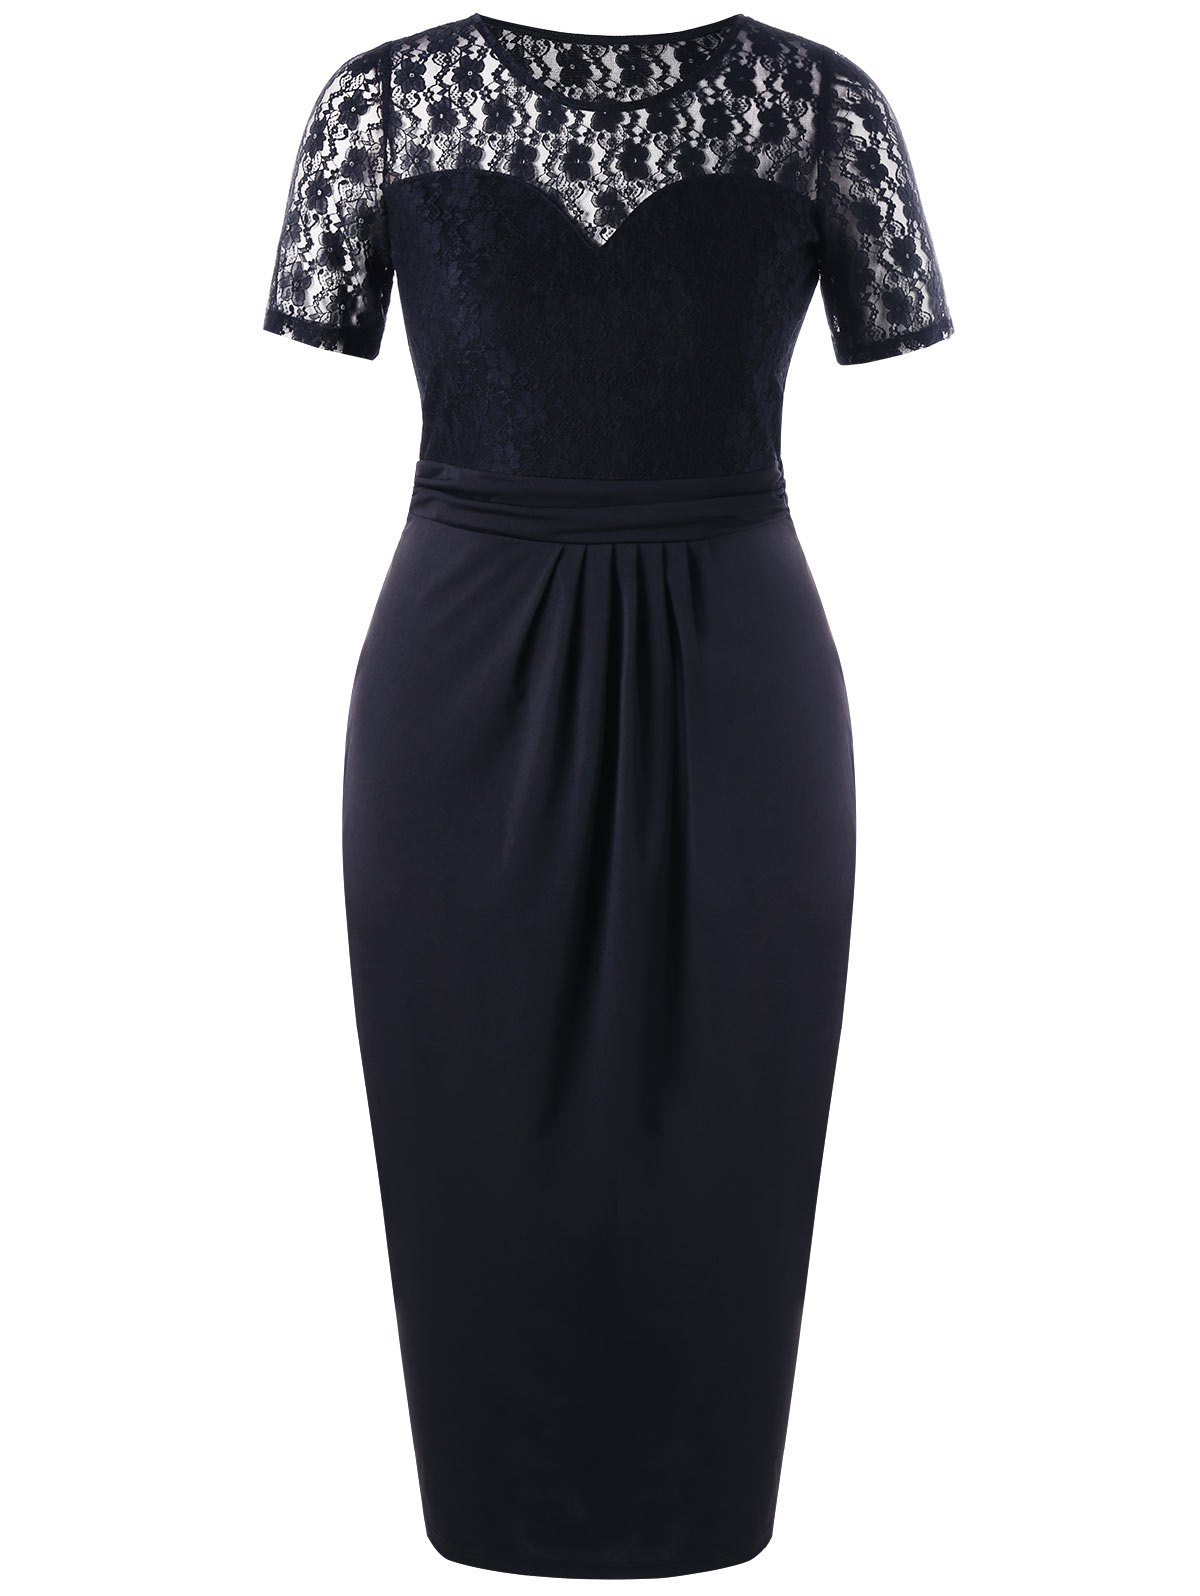 Plus Size Sheer Lace Trim Pencil DressWOMEN<br><br>Size: 4XL; Color: BLACK; Style: Brief; Material: Polyester,Spandex; Silhouette: Sheath; Dresses Length: Ankle-Length; Neckline: Round Collar; Sleeve Length: Short Sleeves; Pattern Type: Floral; With Belt: No; Season: Summer; Weight: 0.4500kg; Package Contents: 1 x Dress;